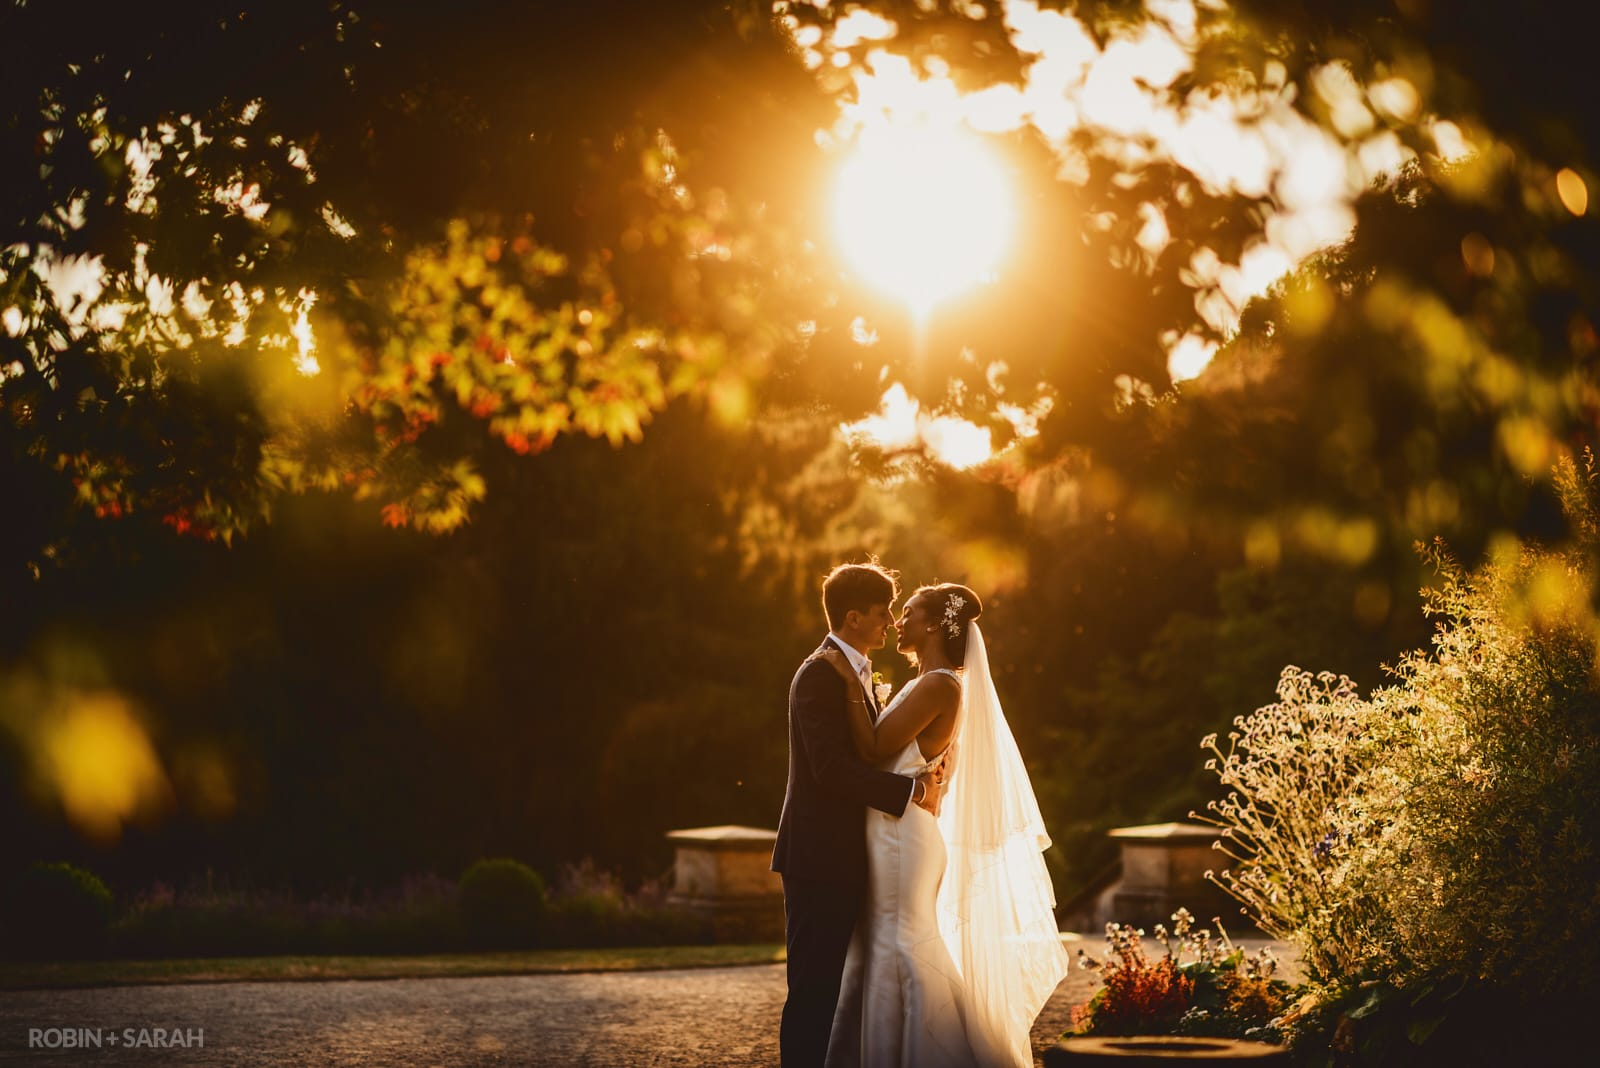 Bride and groom about to kiss under trees with beautiful sunset